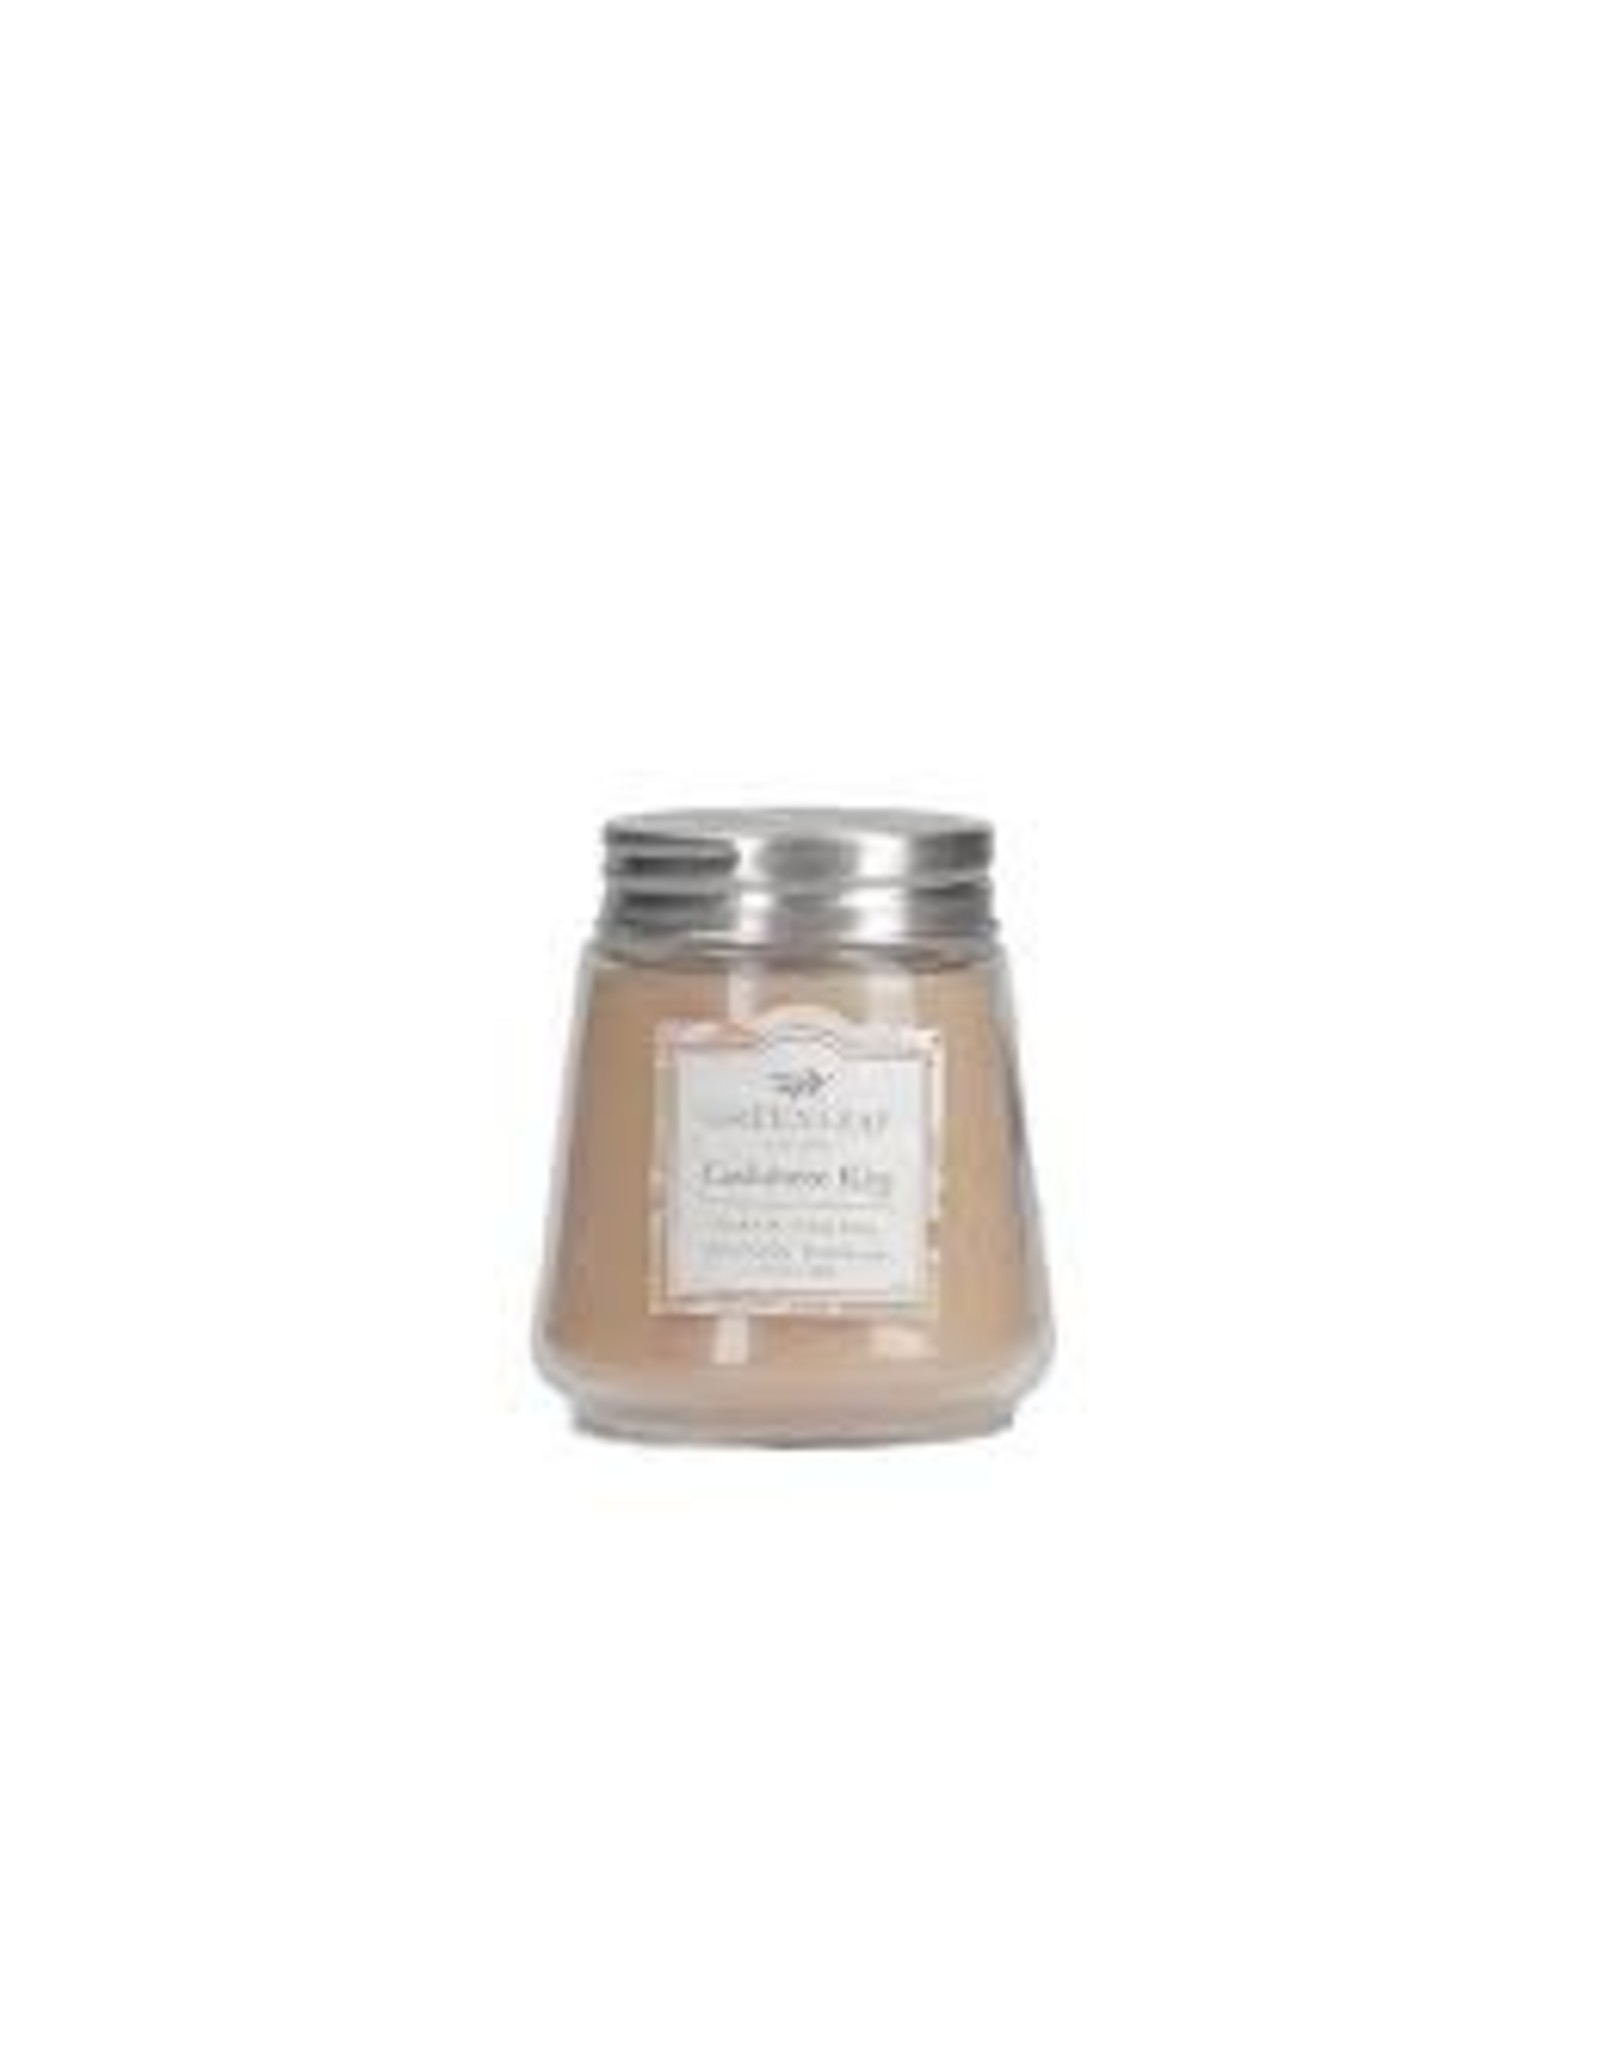 Greenleaf Cashmere Kiss Candle Petite